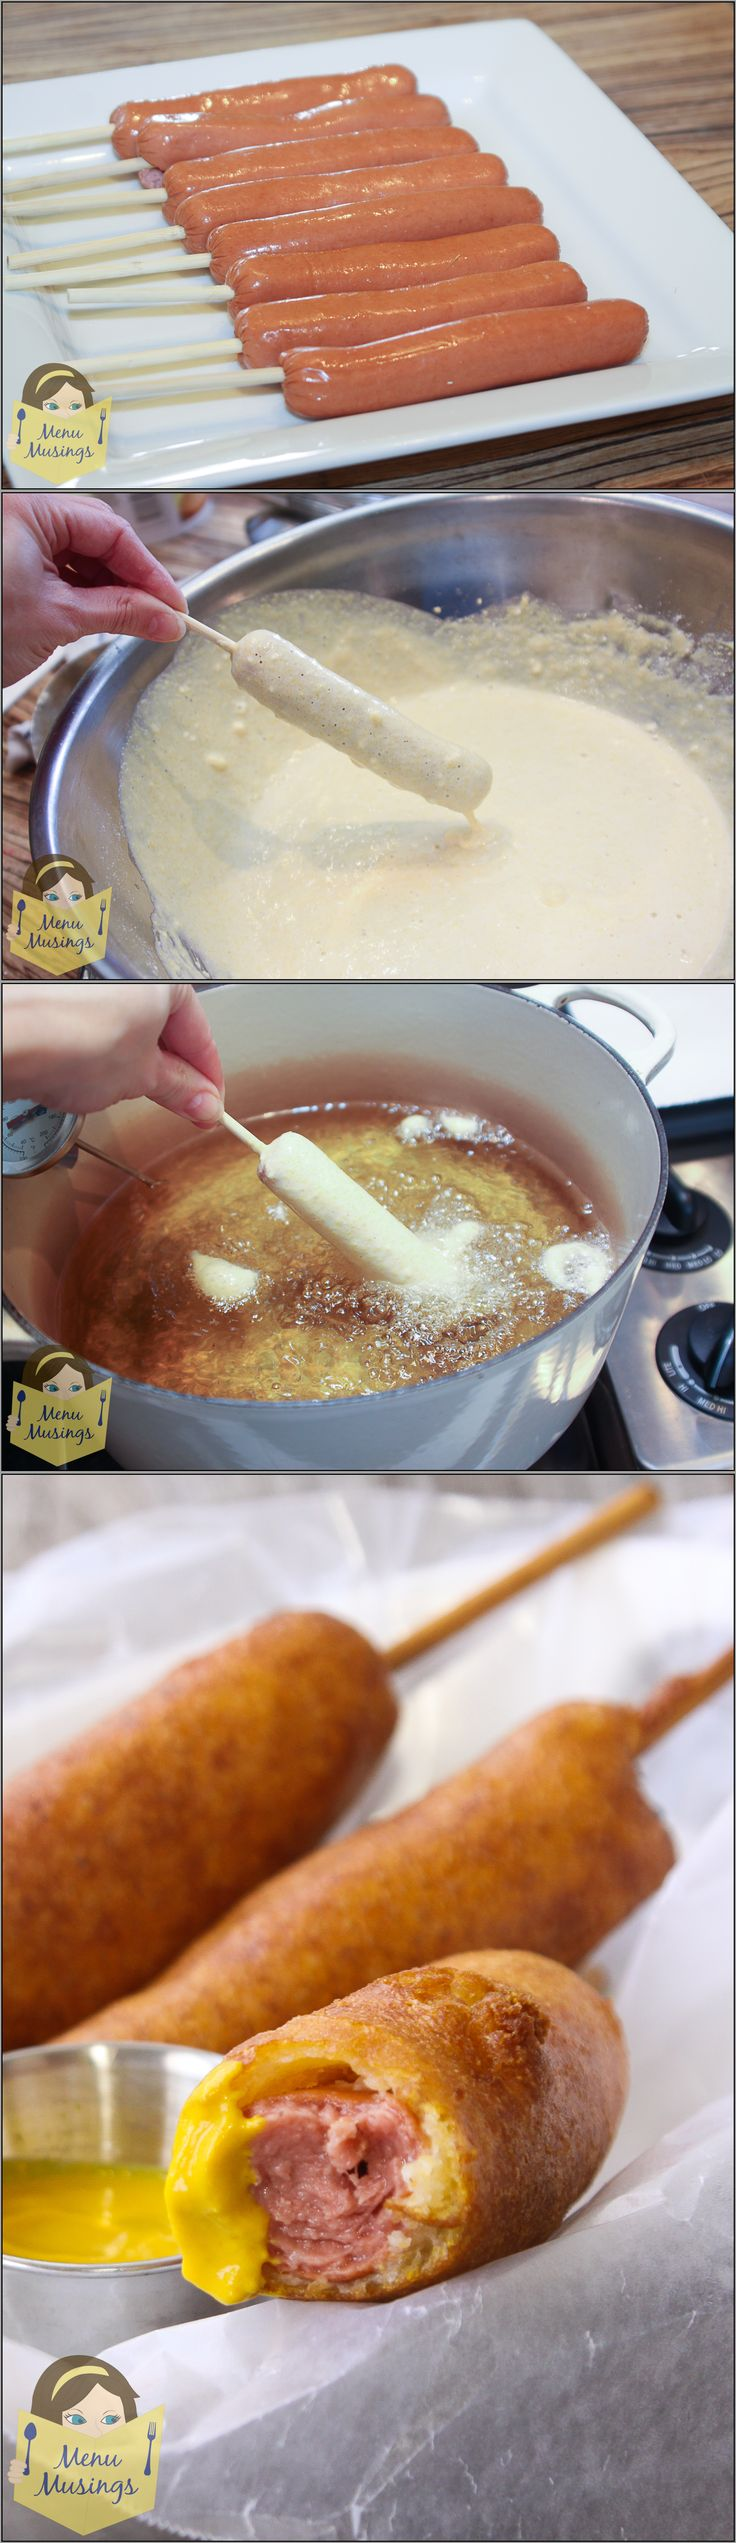 Homemade Corn Dogs – Step-by-step photo tutorial (linked to recipe) to making the classic kids' favorite fair food, all from simple pantry staples. Go with Applegate Hotdogs for nitrite/nitrate-free :)